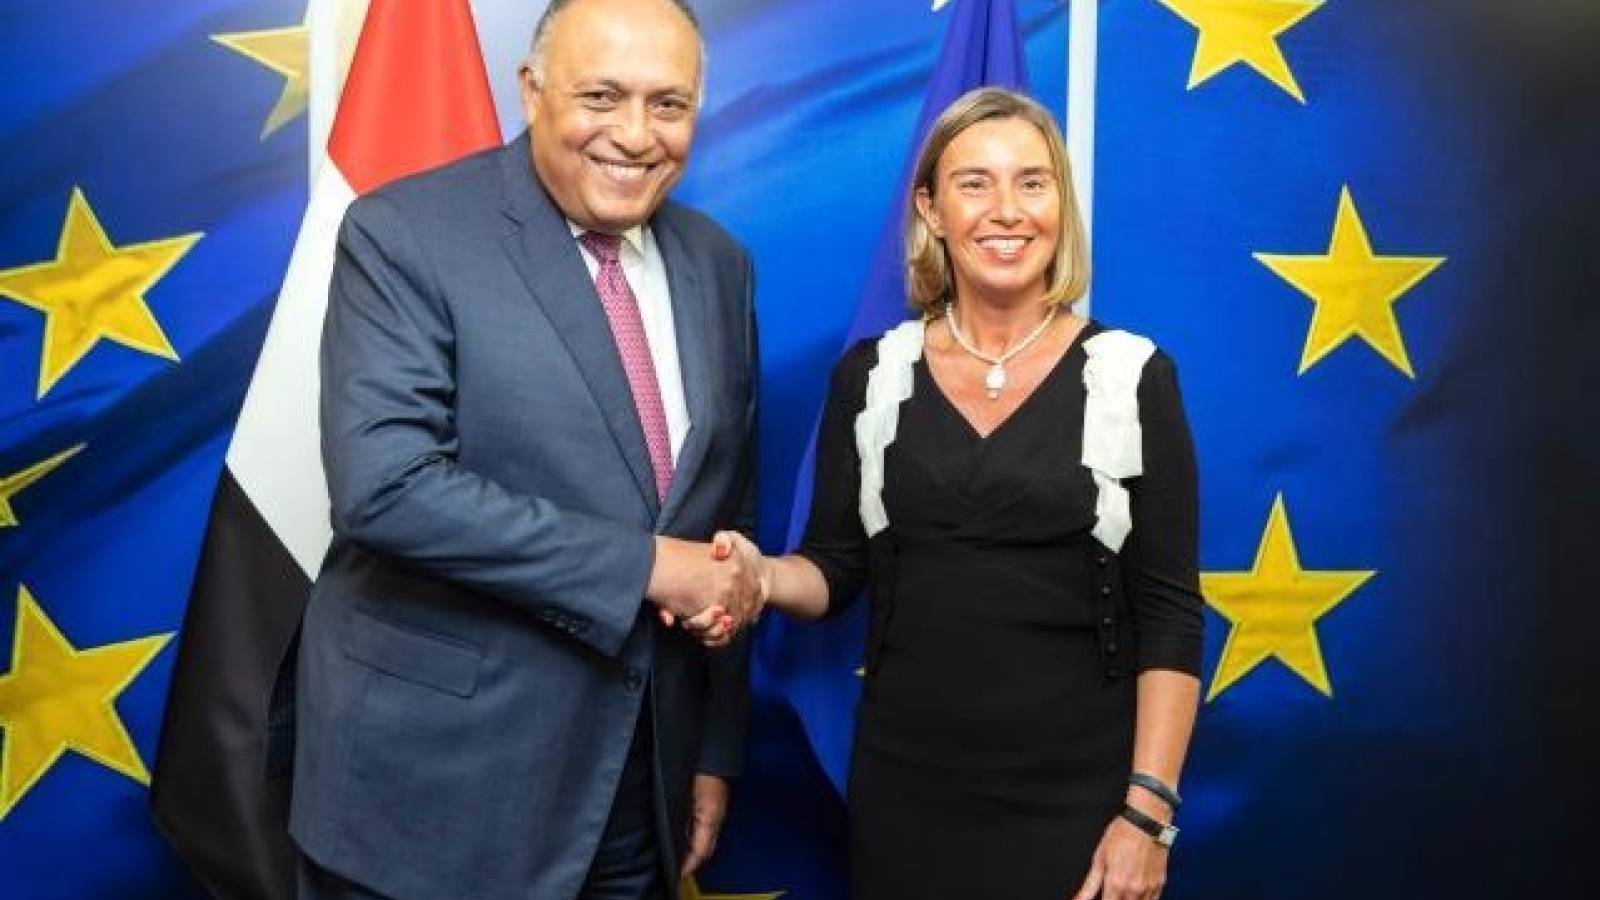 HR/VP Federica Mogherini and Foreign Minister of Egypt Sameh Shoukry